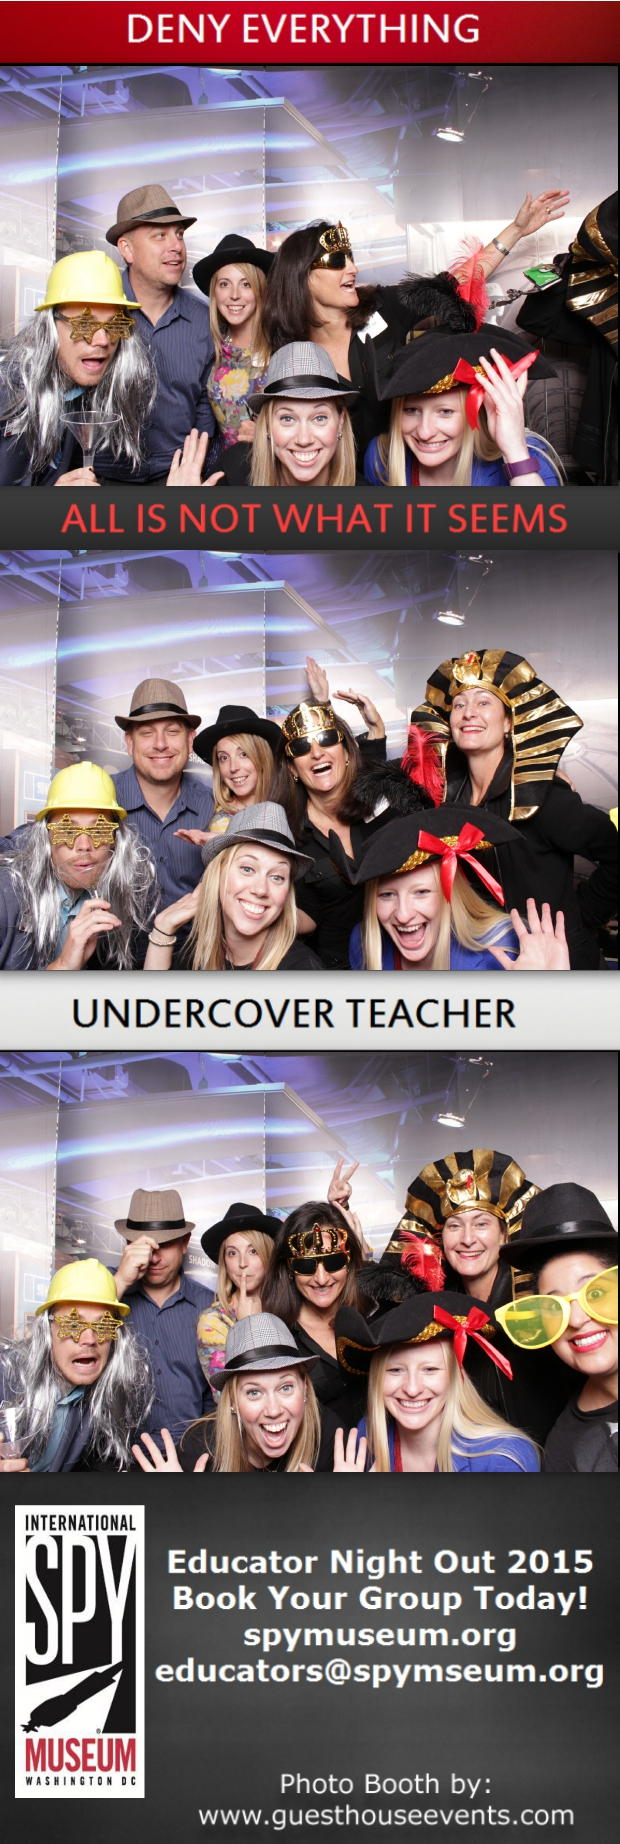 Guest House Events Photo Booth Spy Museum Educator Night Out (84).jpg